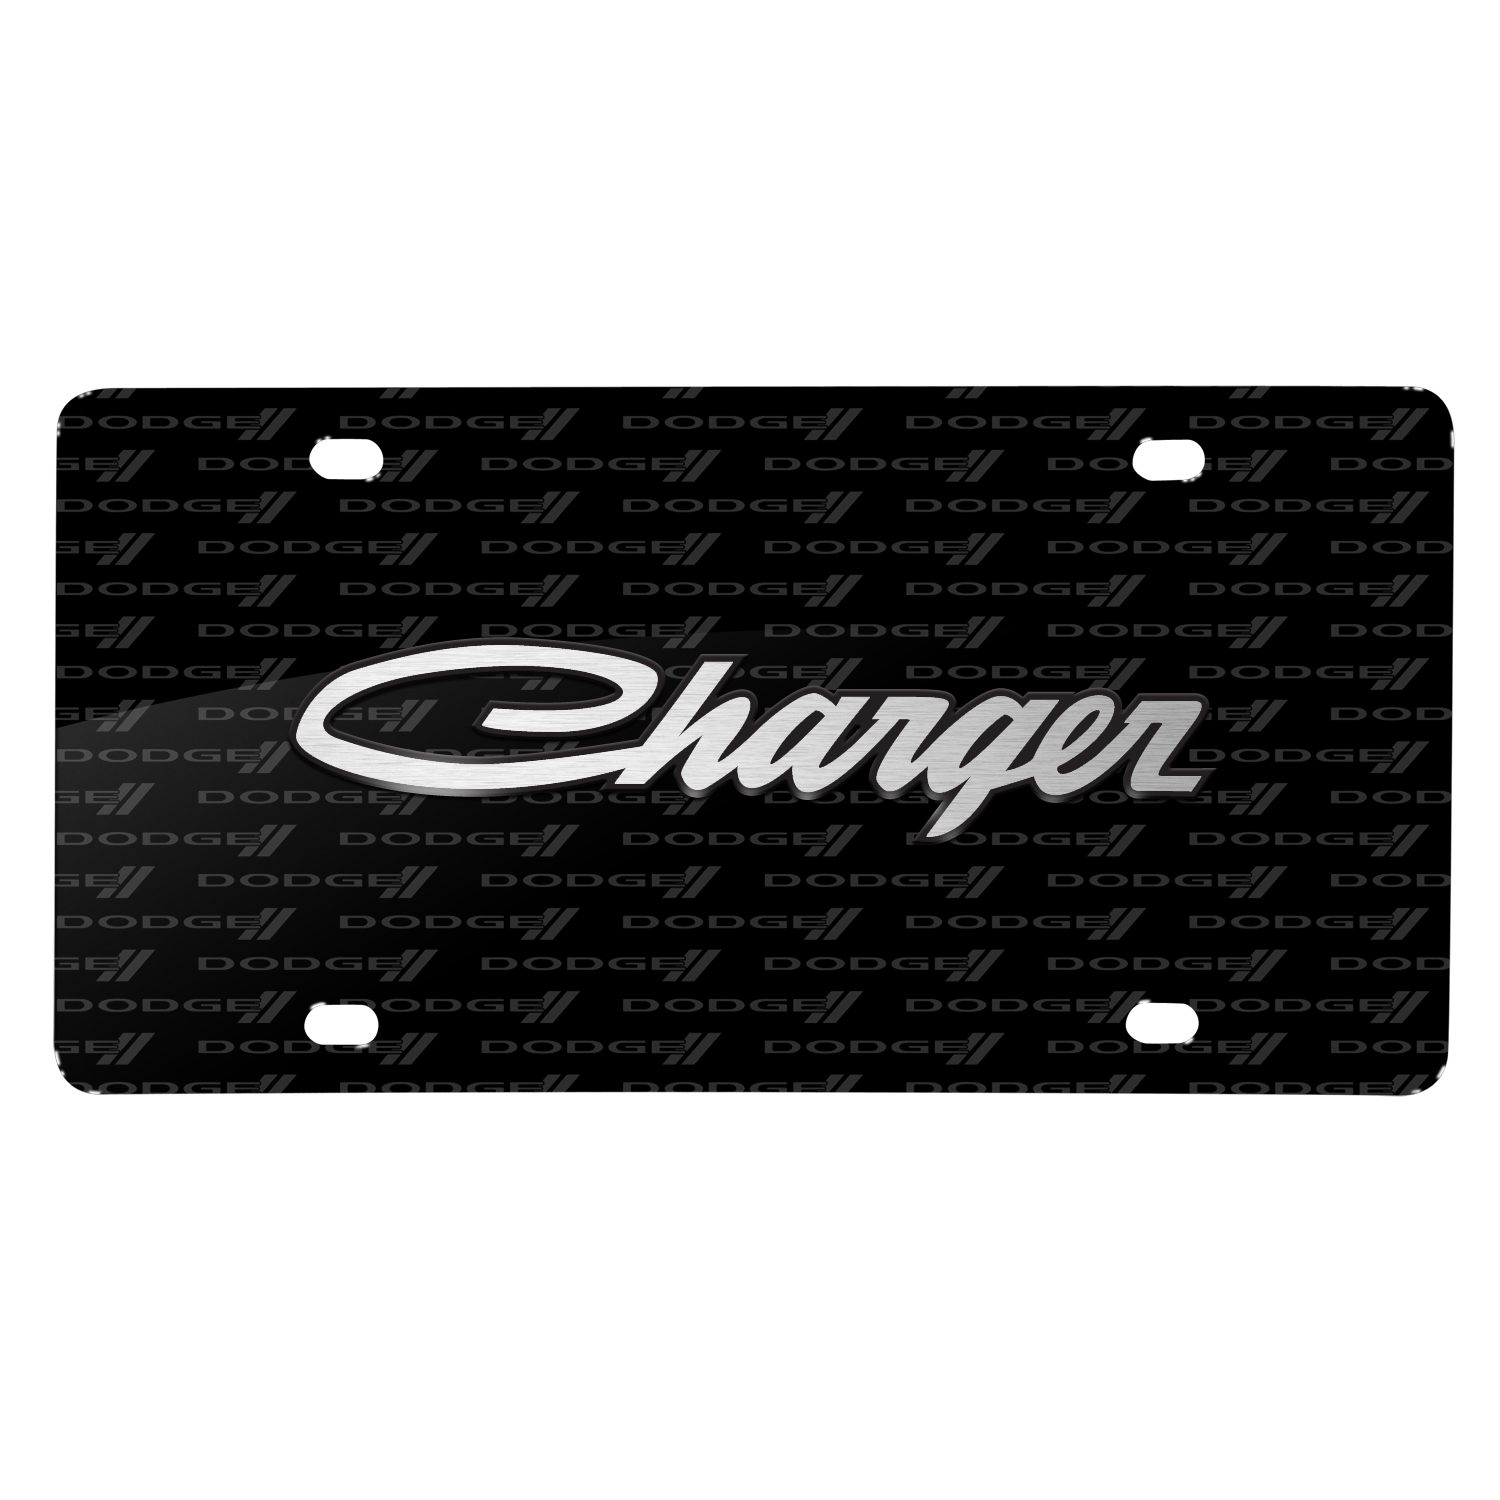 Dodge Charger Classic 3D Logo on Logo Pattern Black Aluminum License Plate